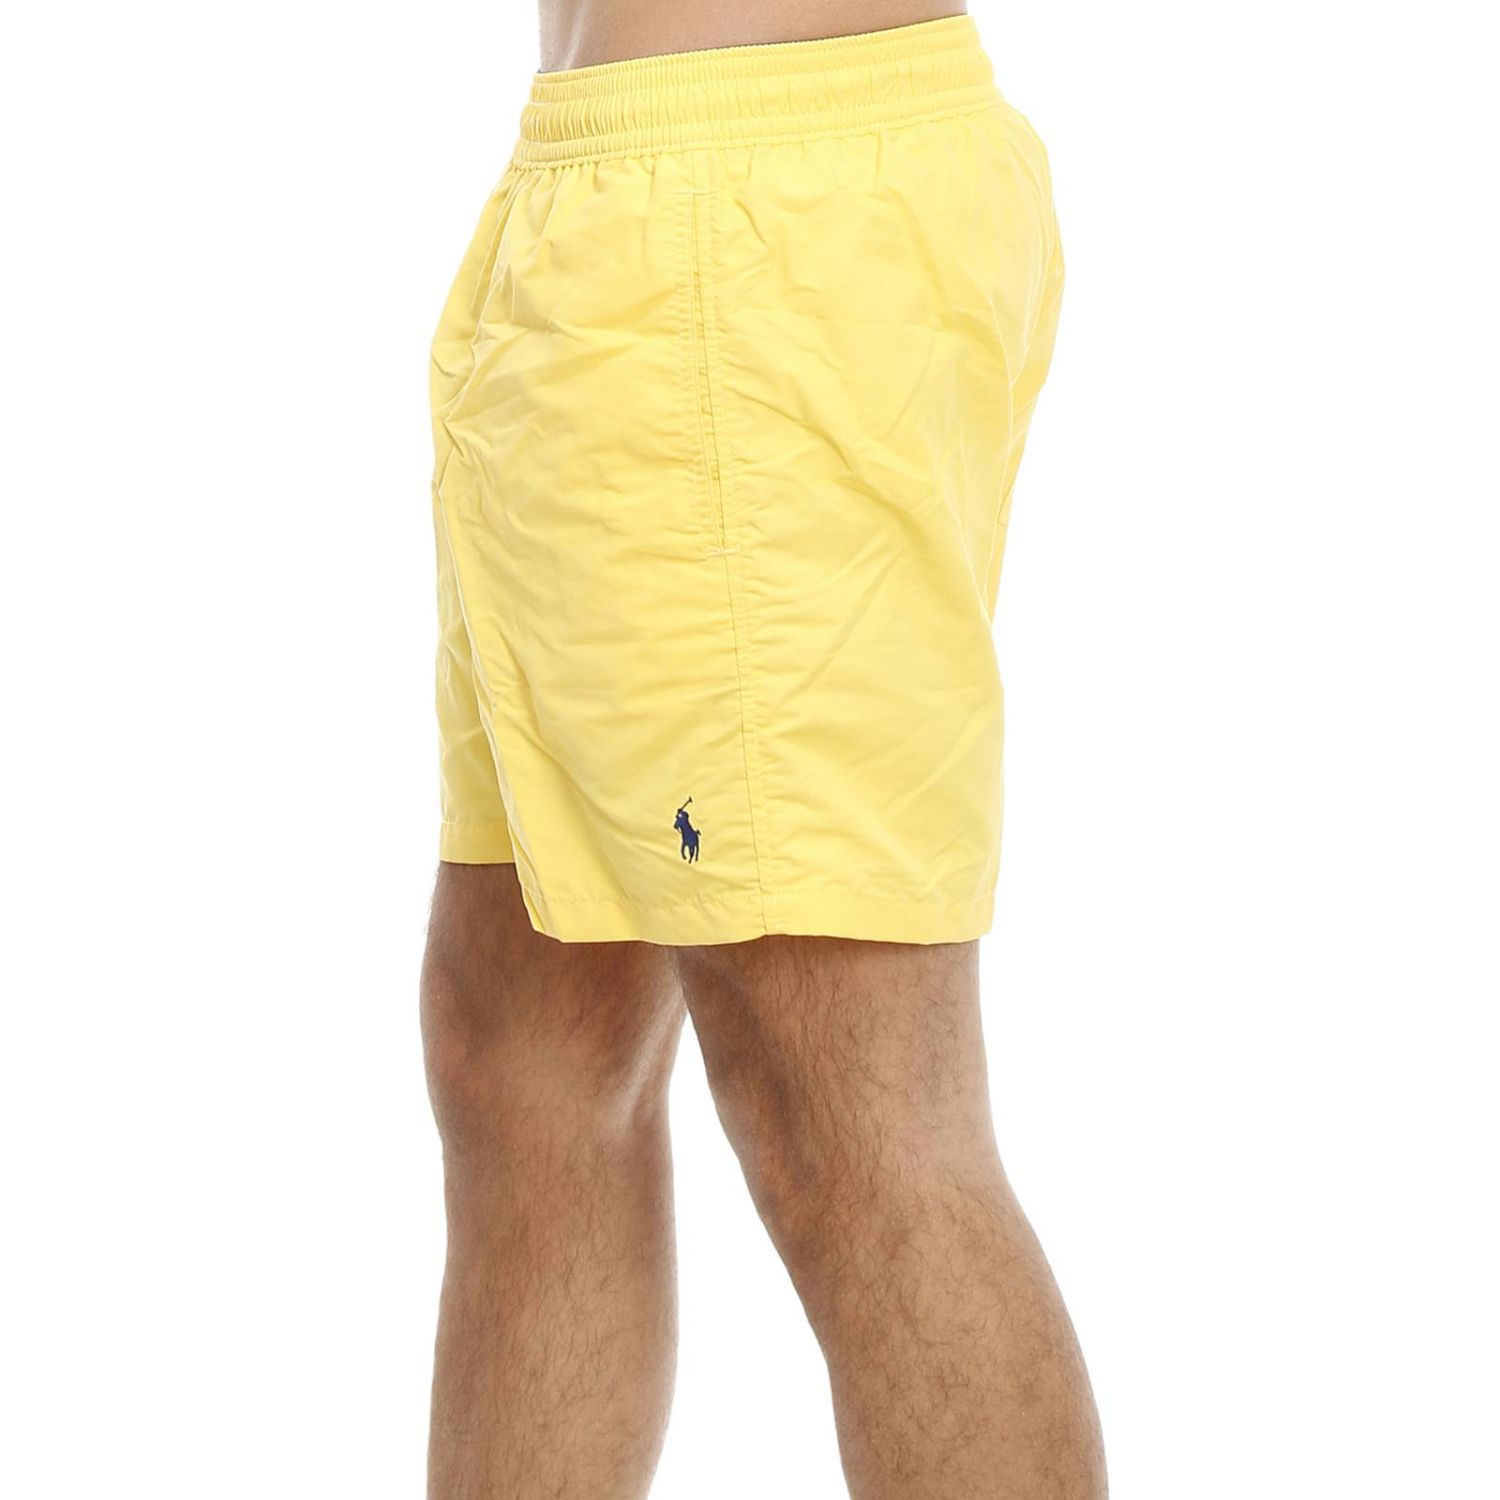 Polo ralph lauren Swimwear Boxer Classico in Yellow for ...